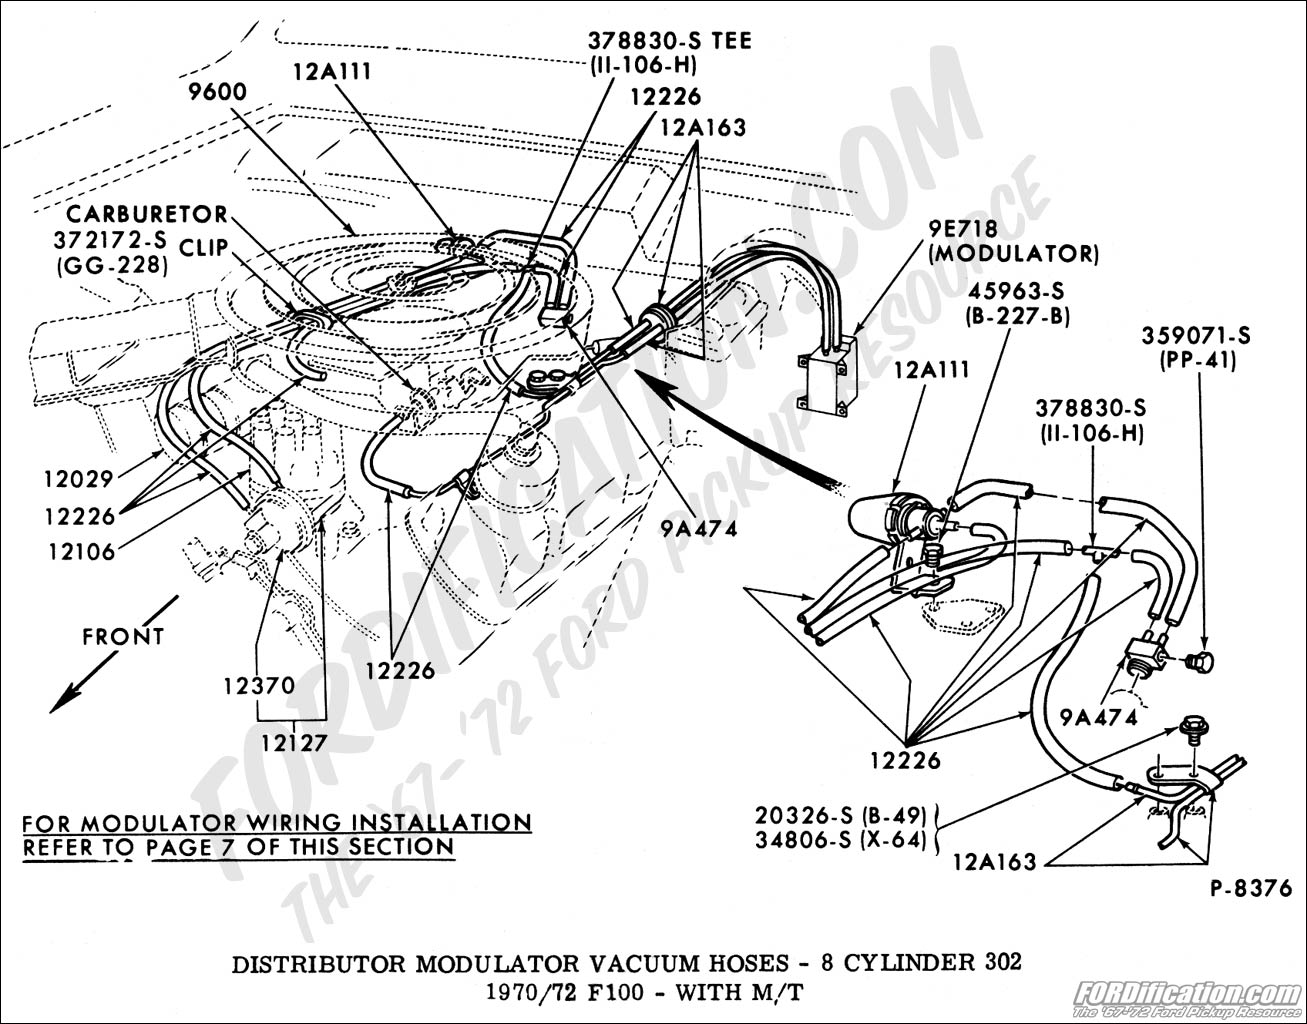 ford truck technical drawings and schematics section i 1969 Ford Alternator Wiring Schematic  Motorcycle Wiring Harness 1971 Ford Mustang Alternator Wiring Diagram Ford Alternator Regulator Wiring Diagram